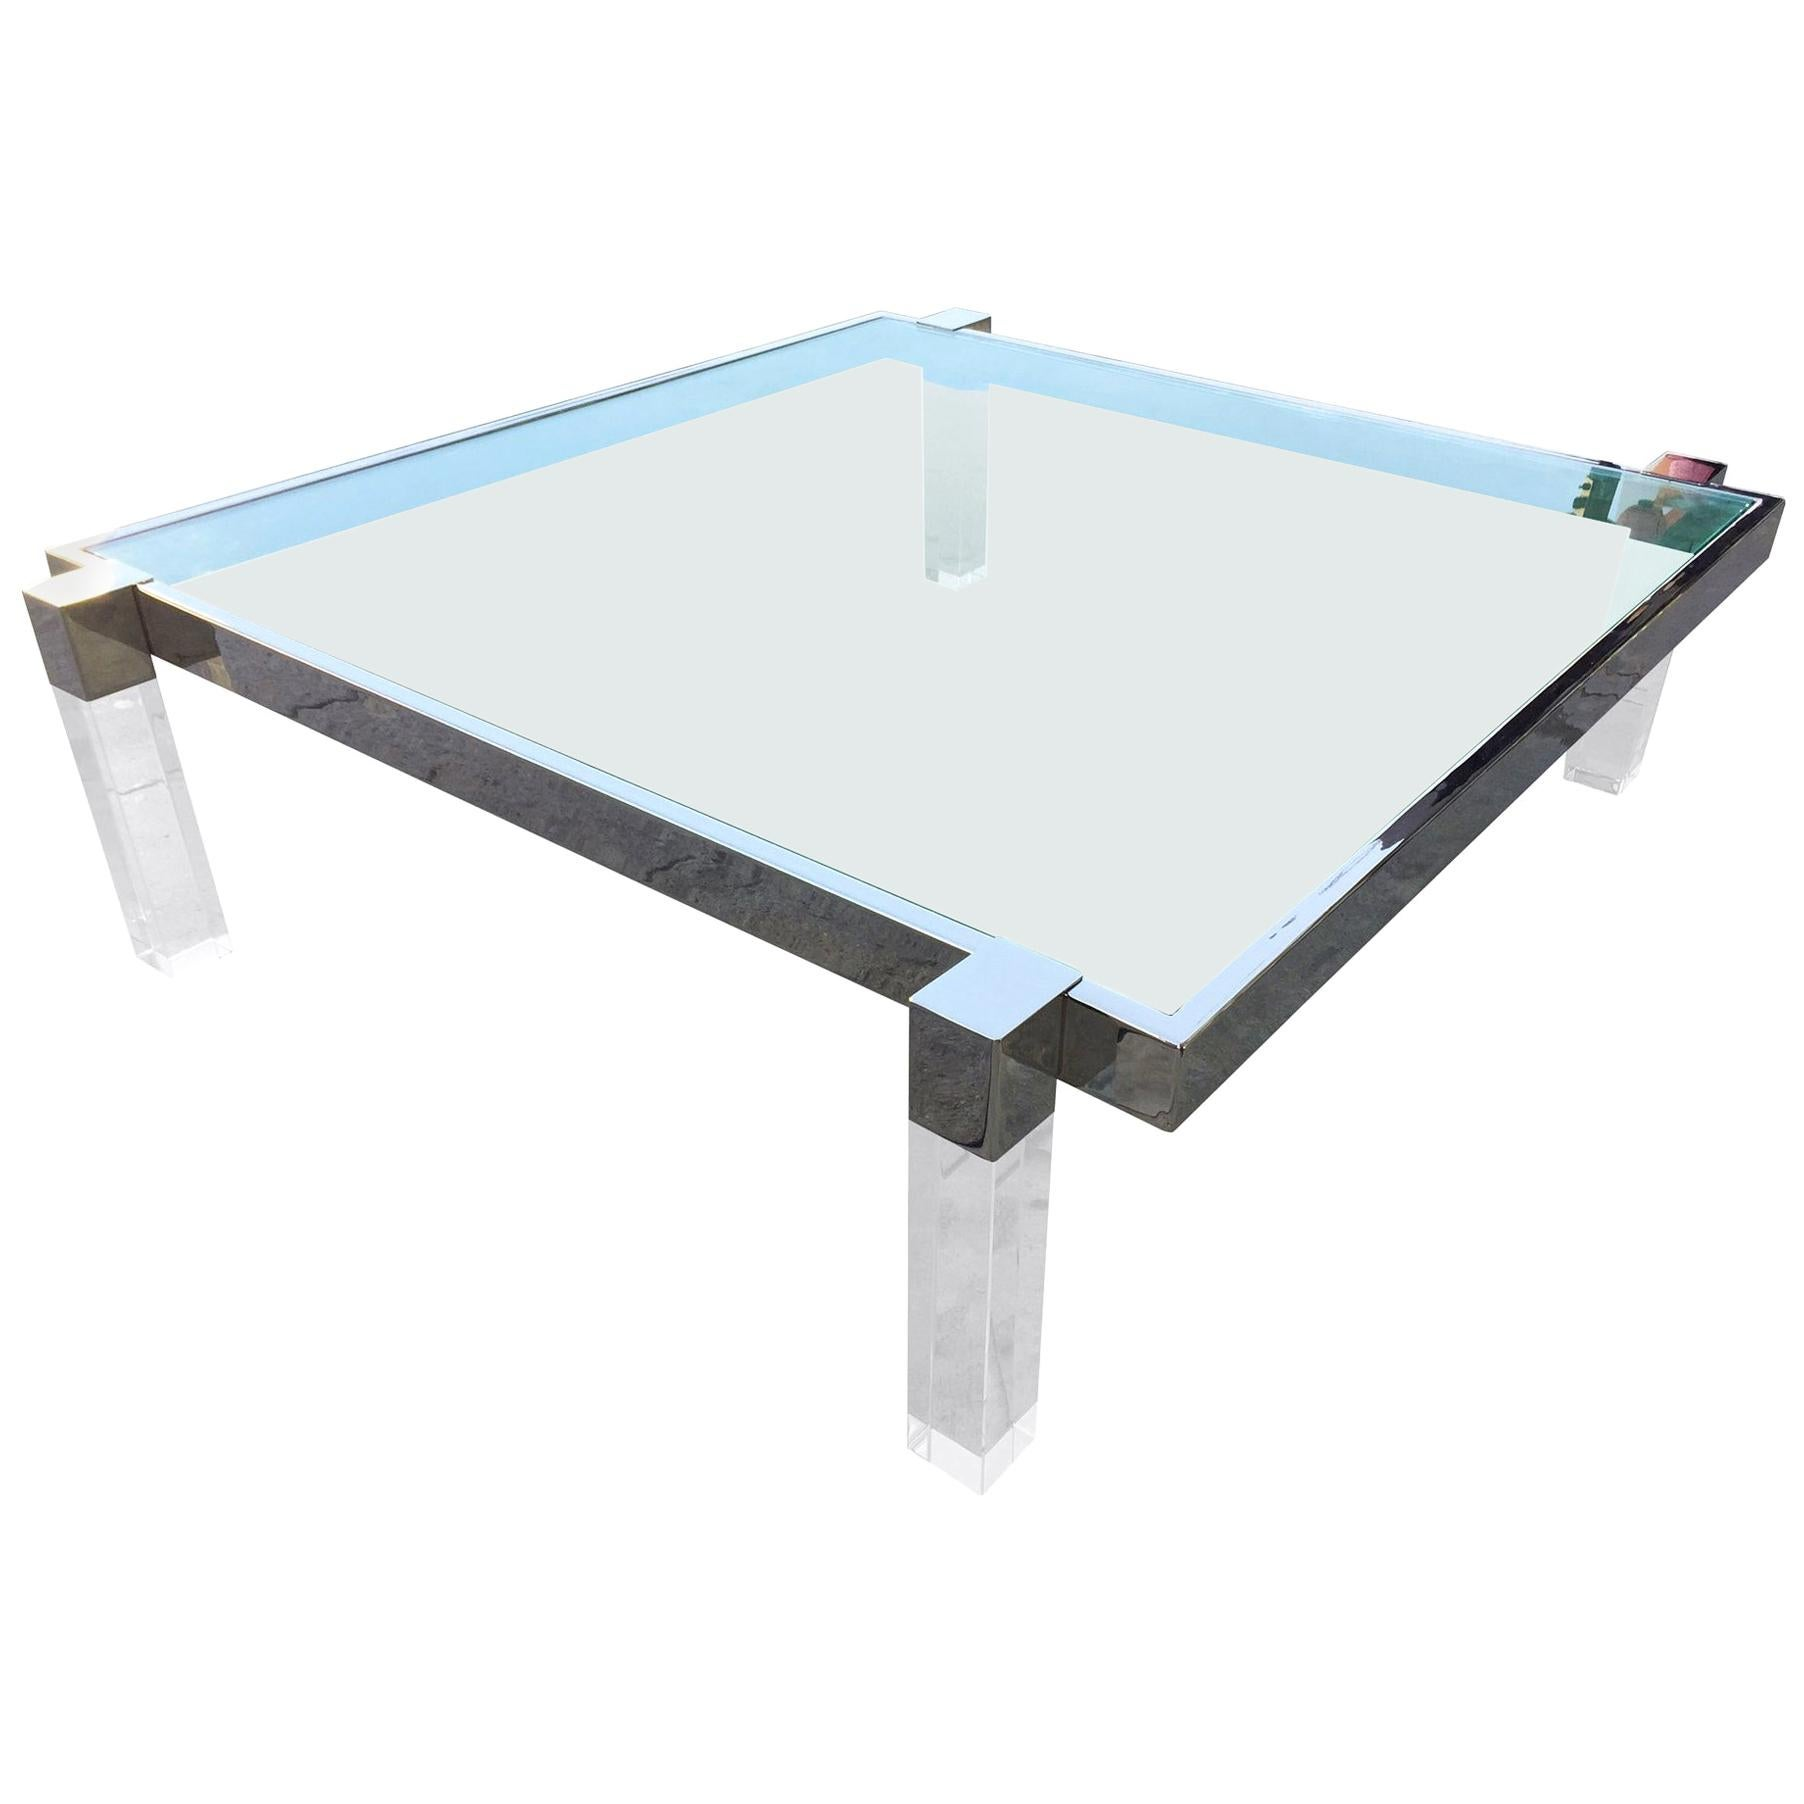 "Charles Hollis Jones ""Box Line"" Coffee Table in Lucite and Polished Nickel"